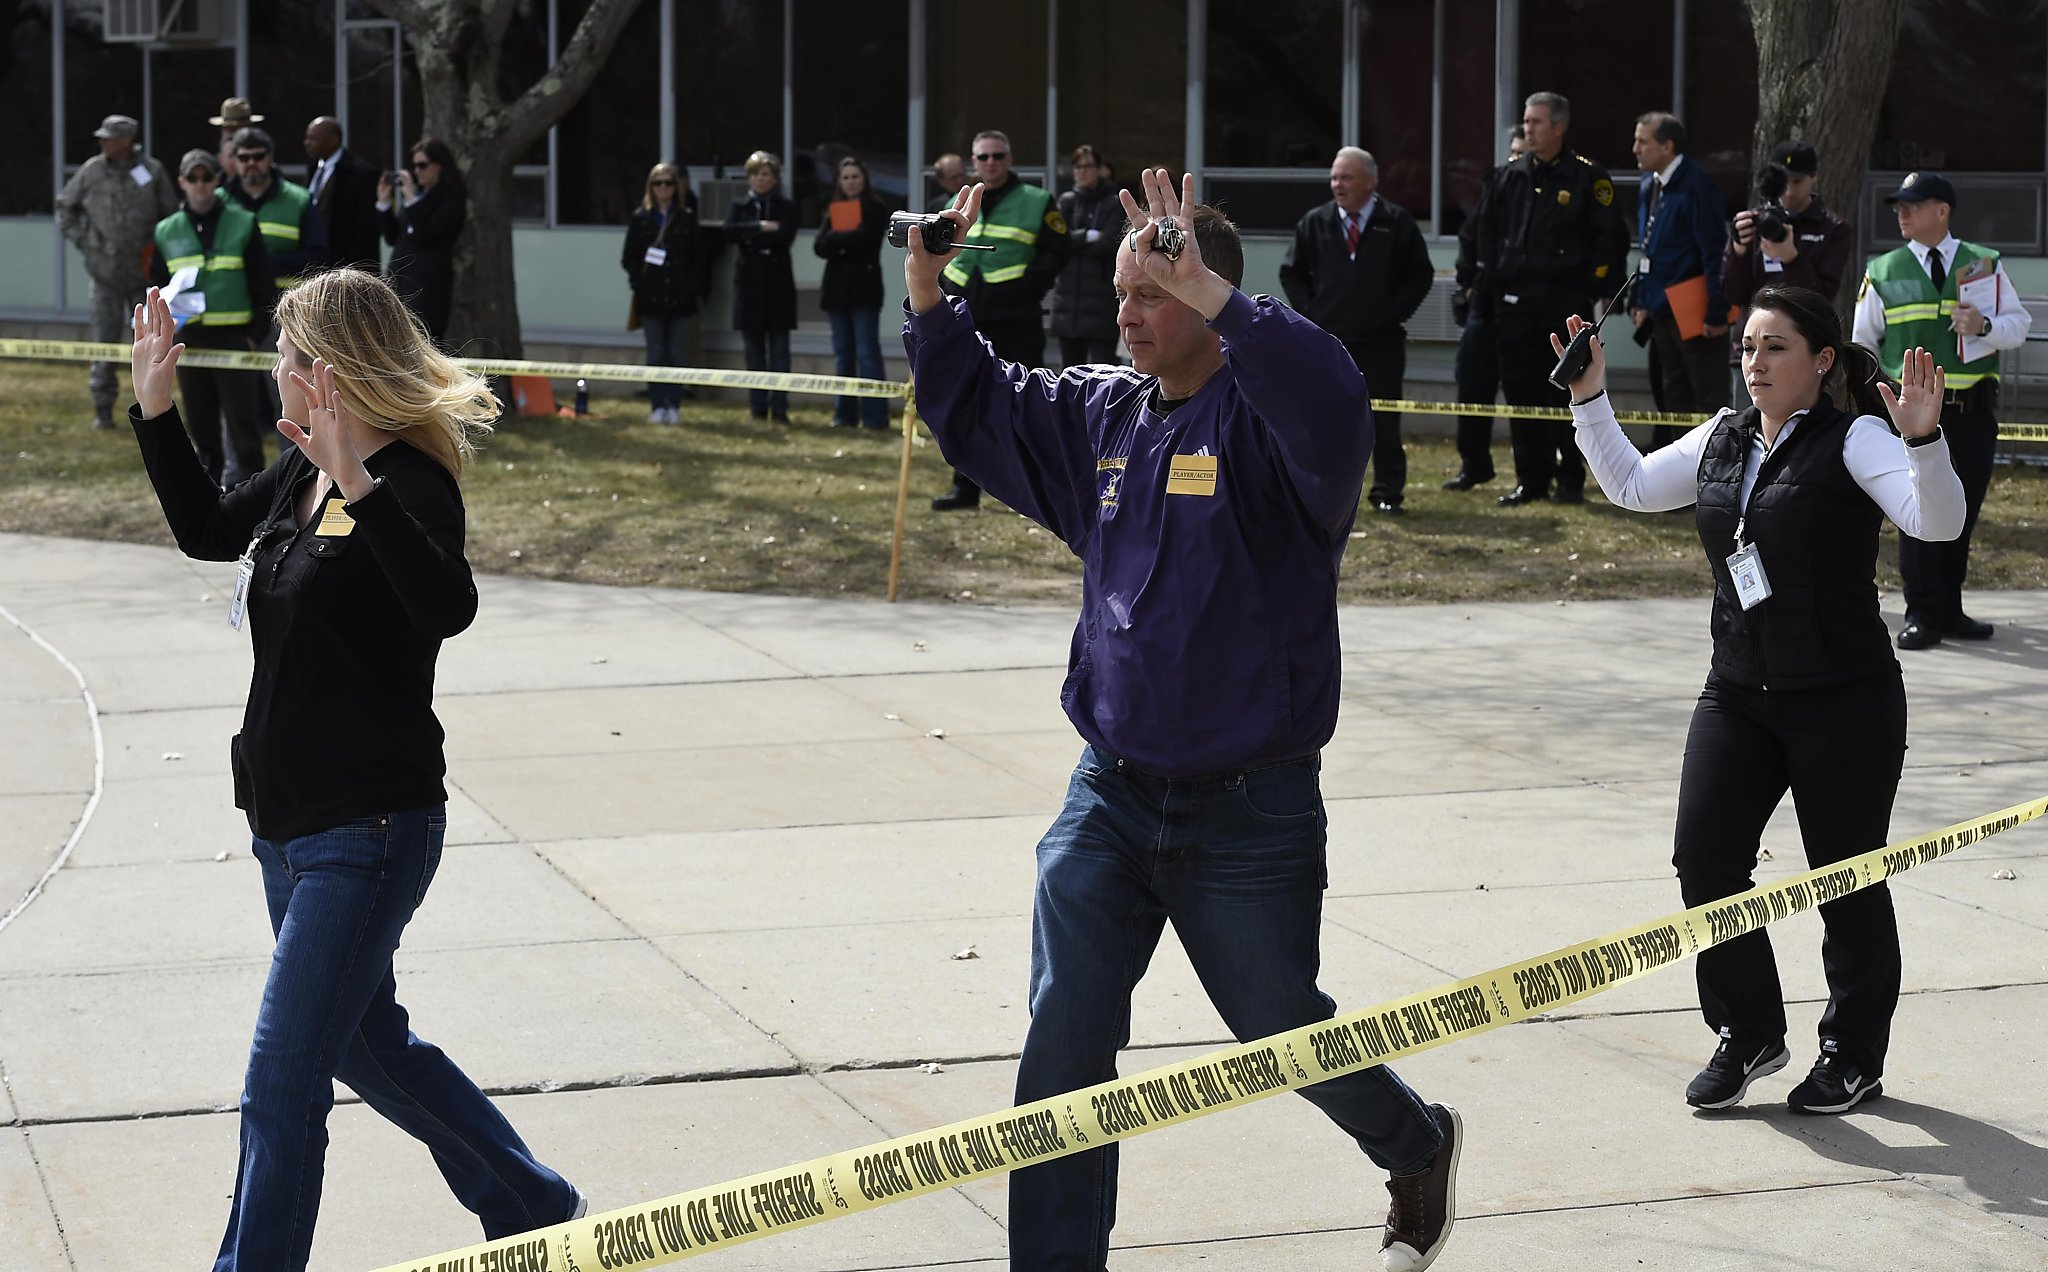 Schools Use Active Shooter Drills To Prepare For Armed